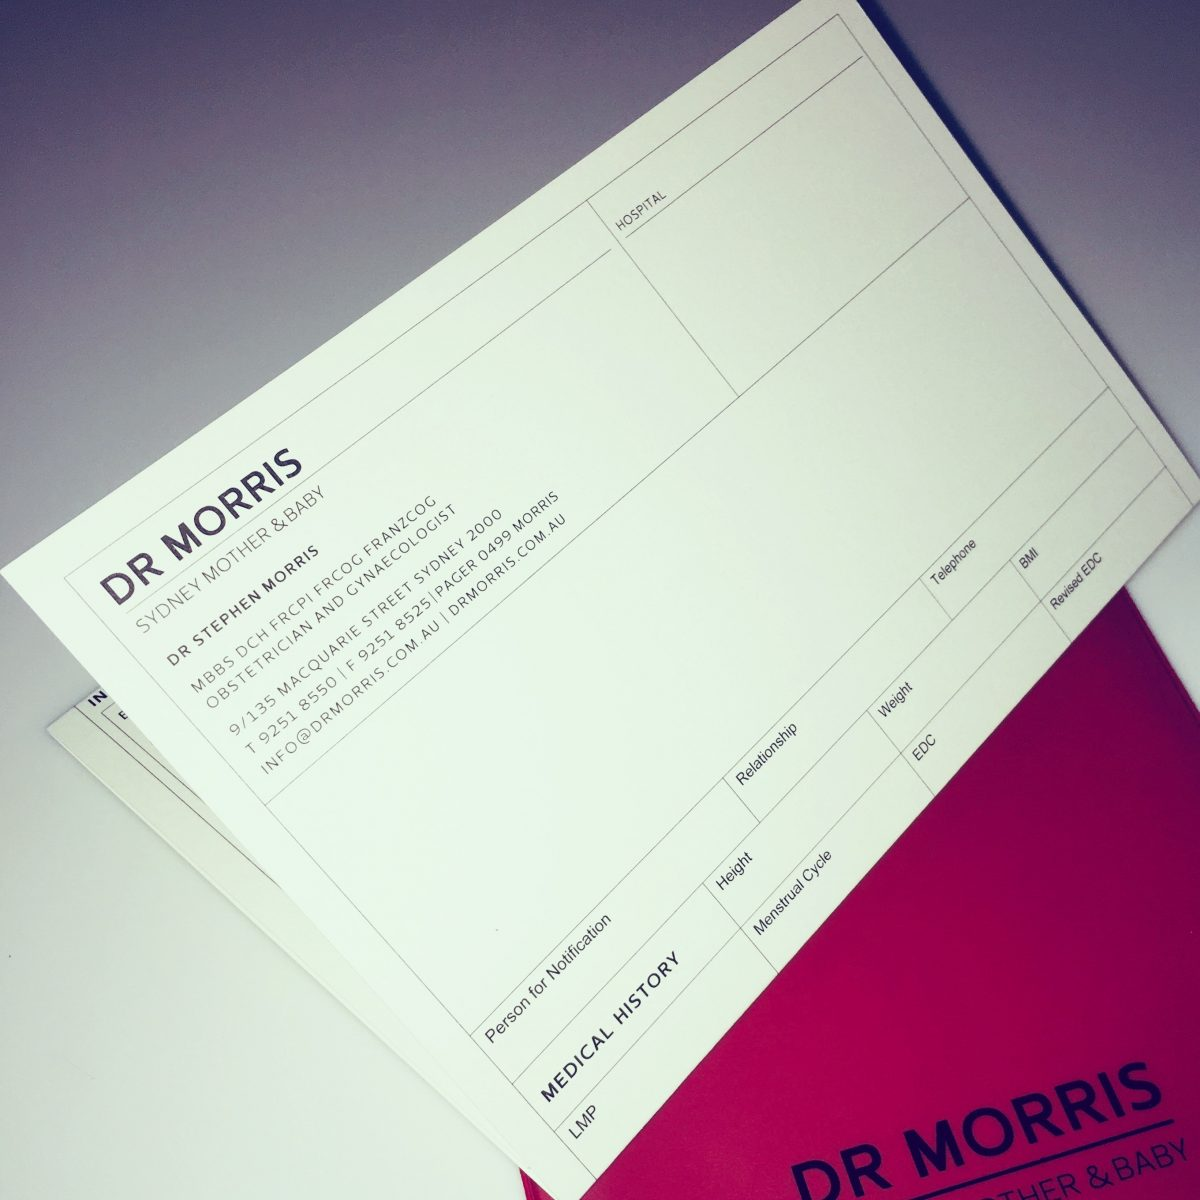 Dr Morris referral letter